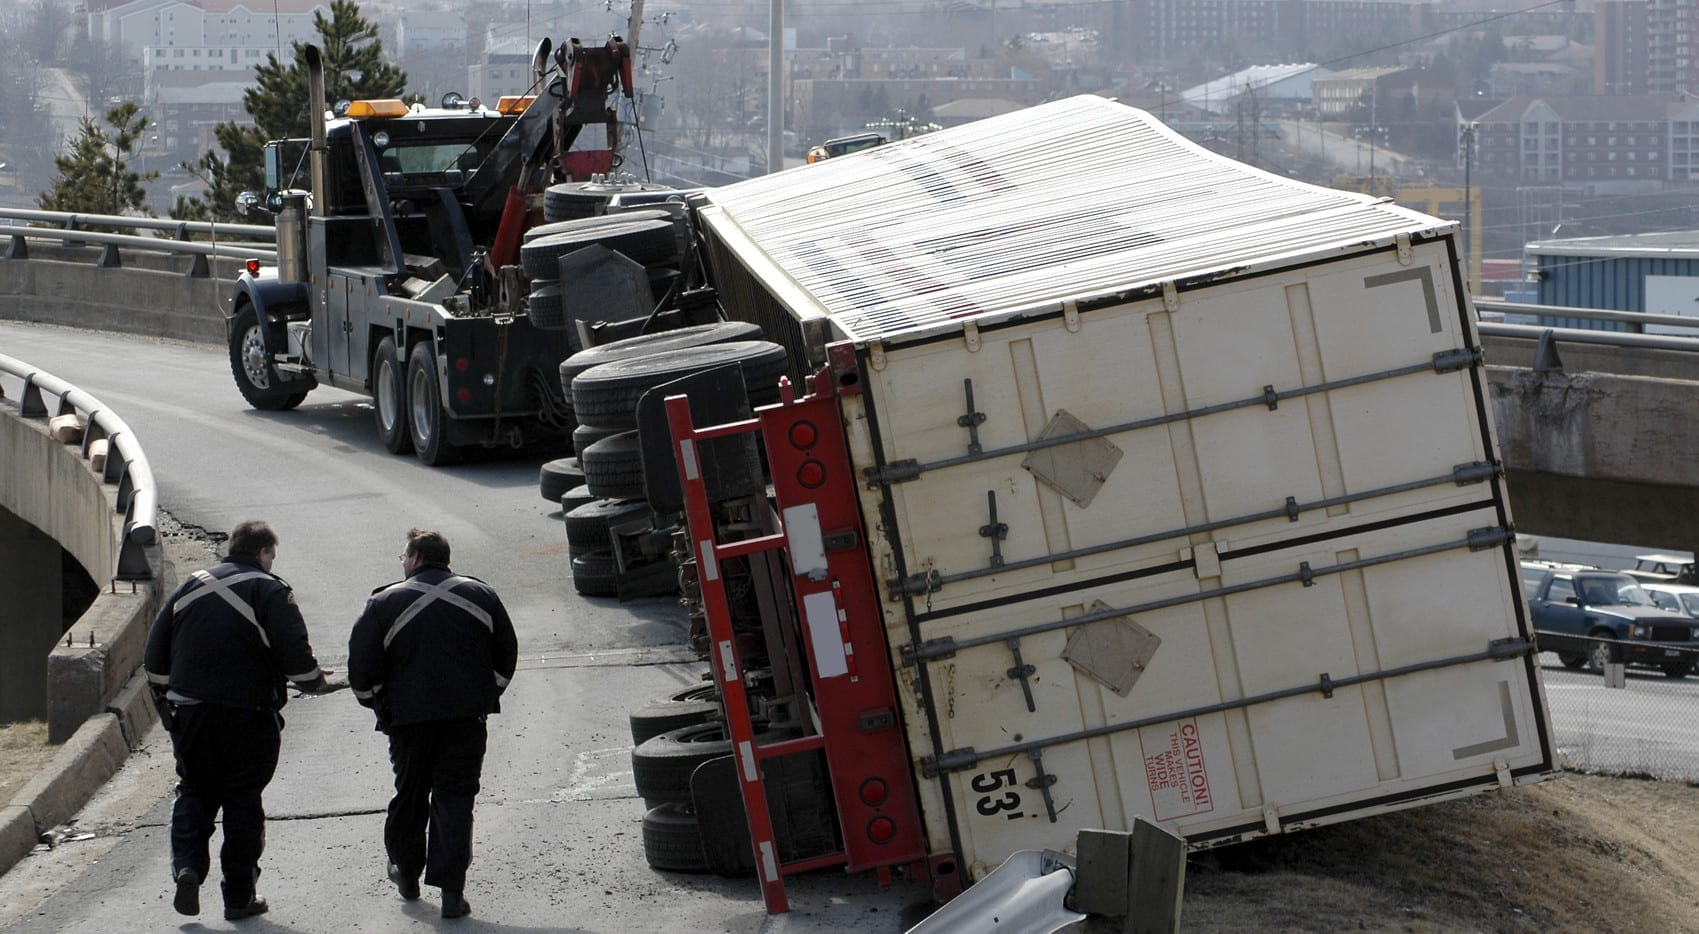 Overturned Semi-truck Stock Photo